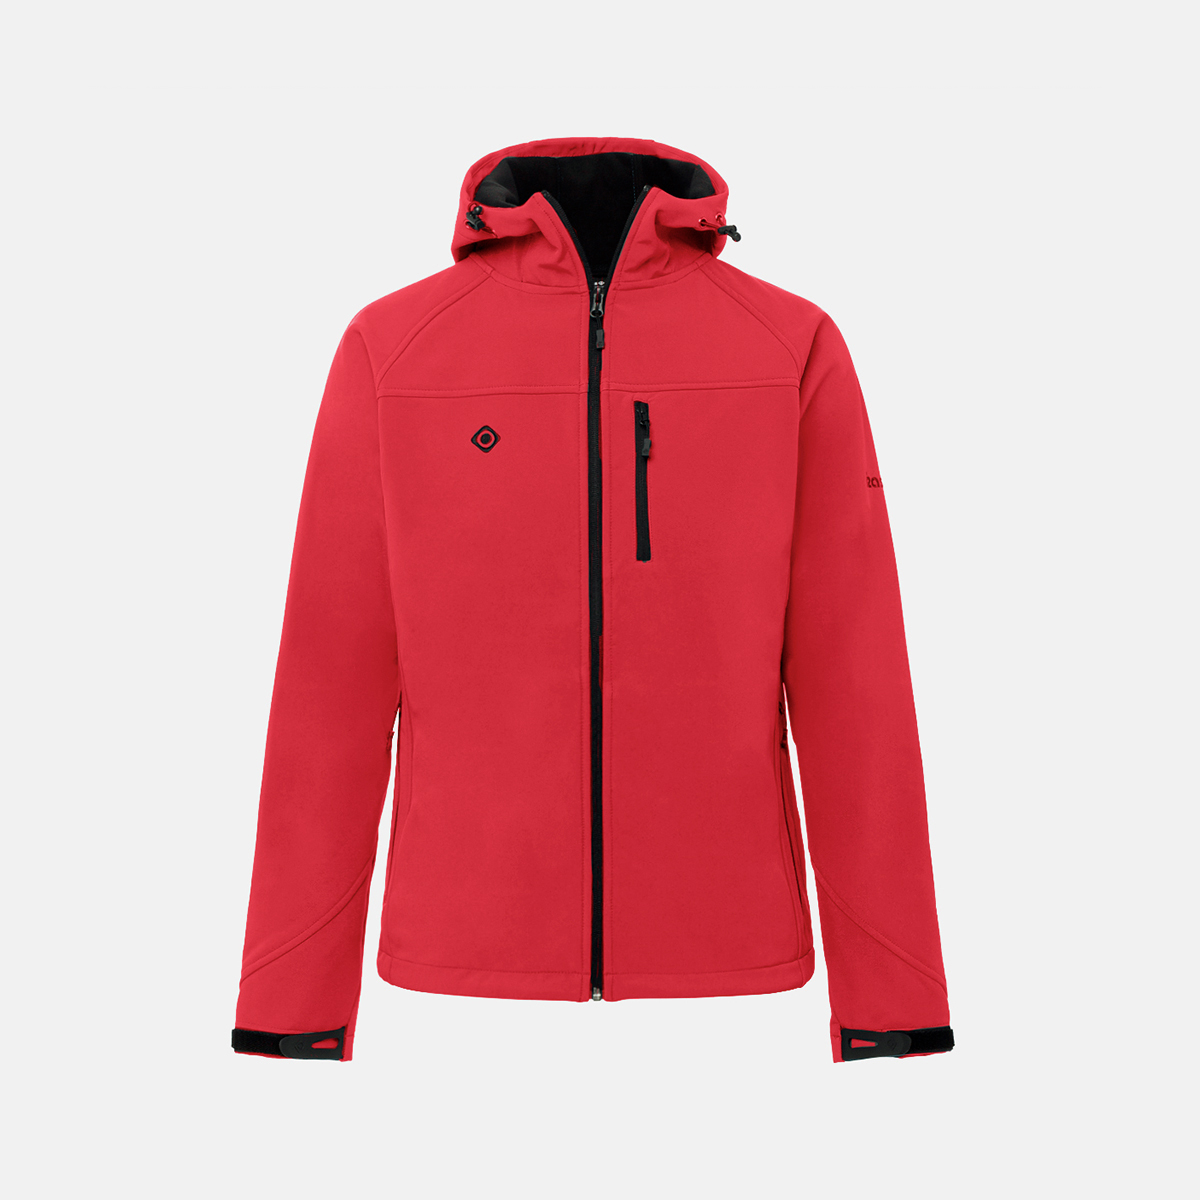 MAN'S STRATUS SOFTSHELL WITH HOOD RED